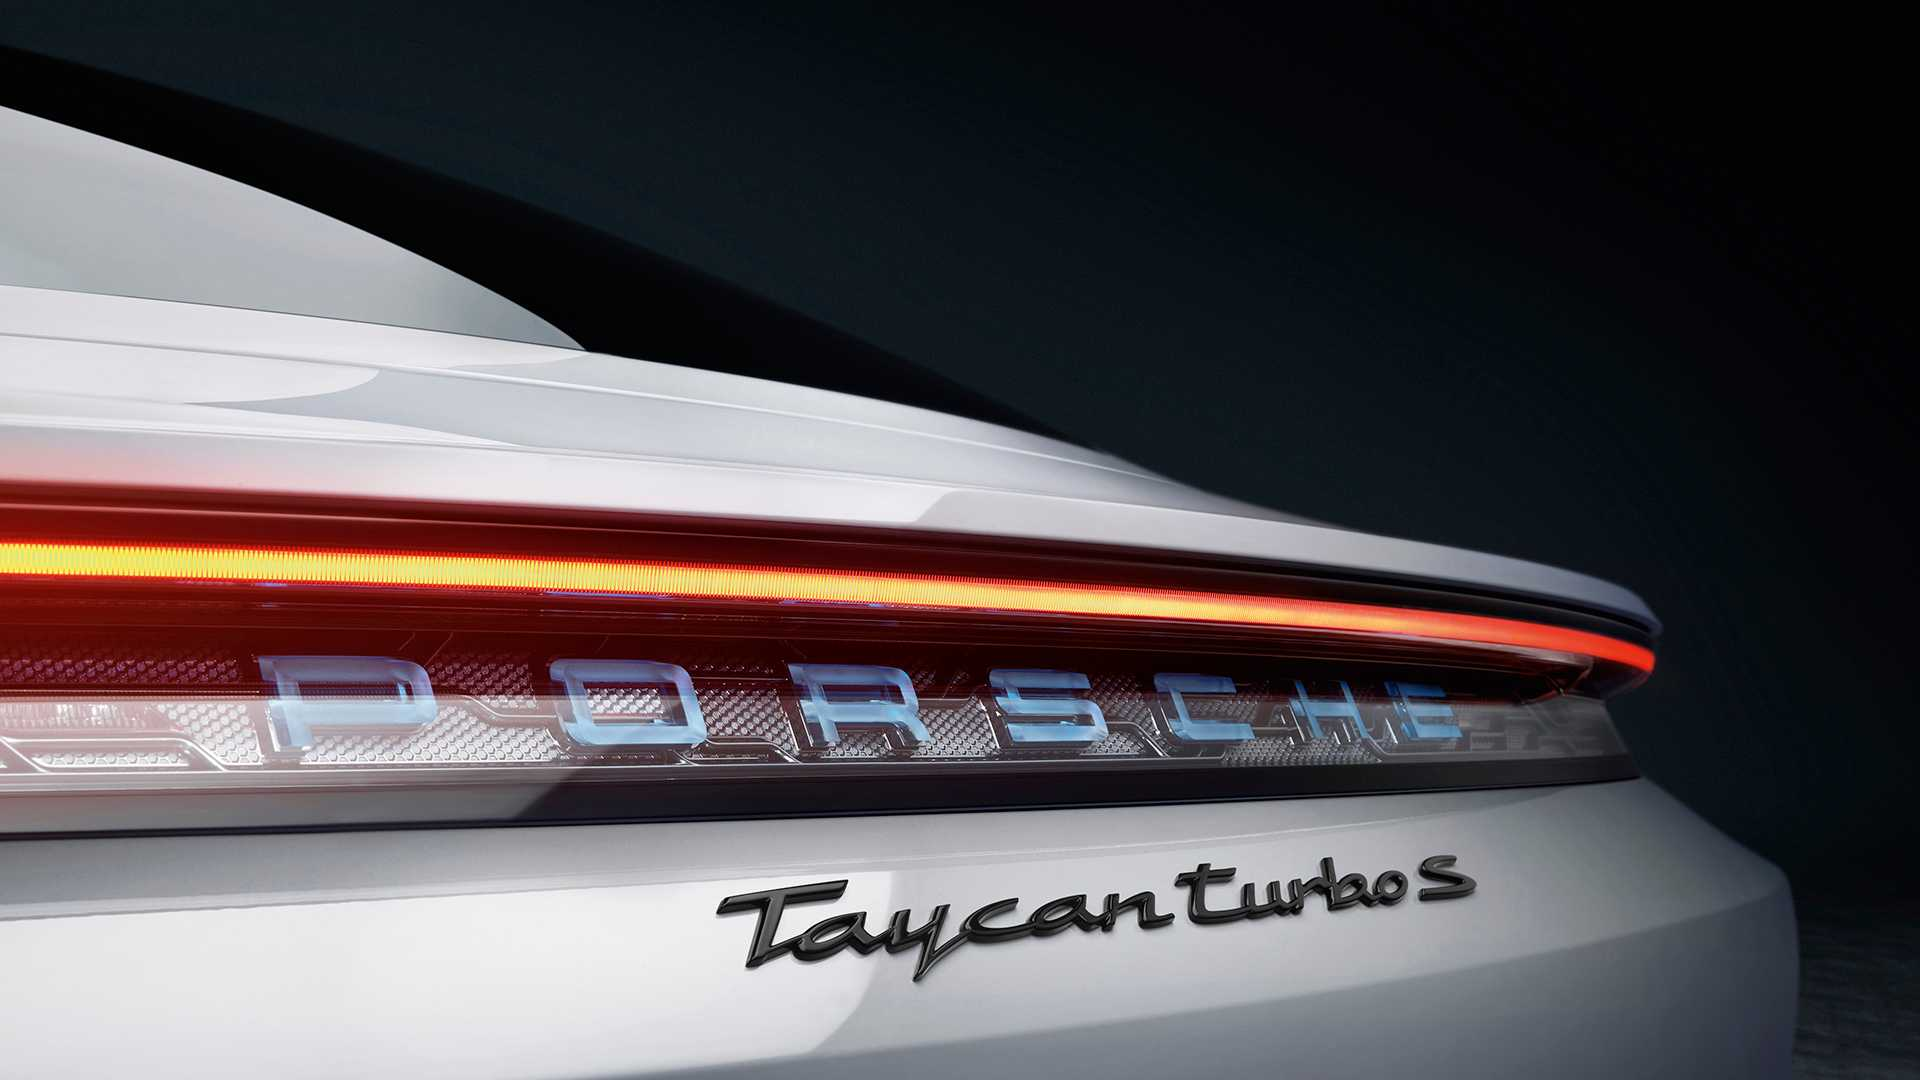 The Taycan Is Finally Here But What Should Porsche Electrify Next 1920x1080